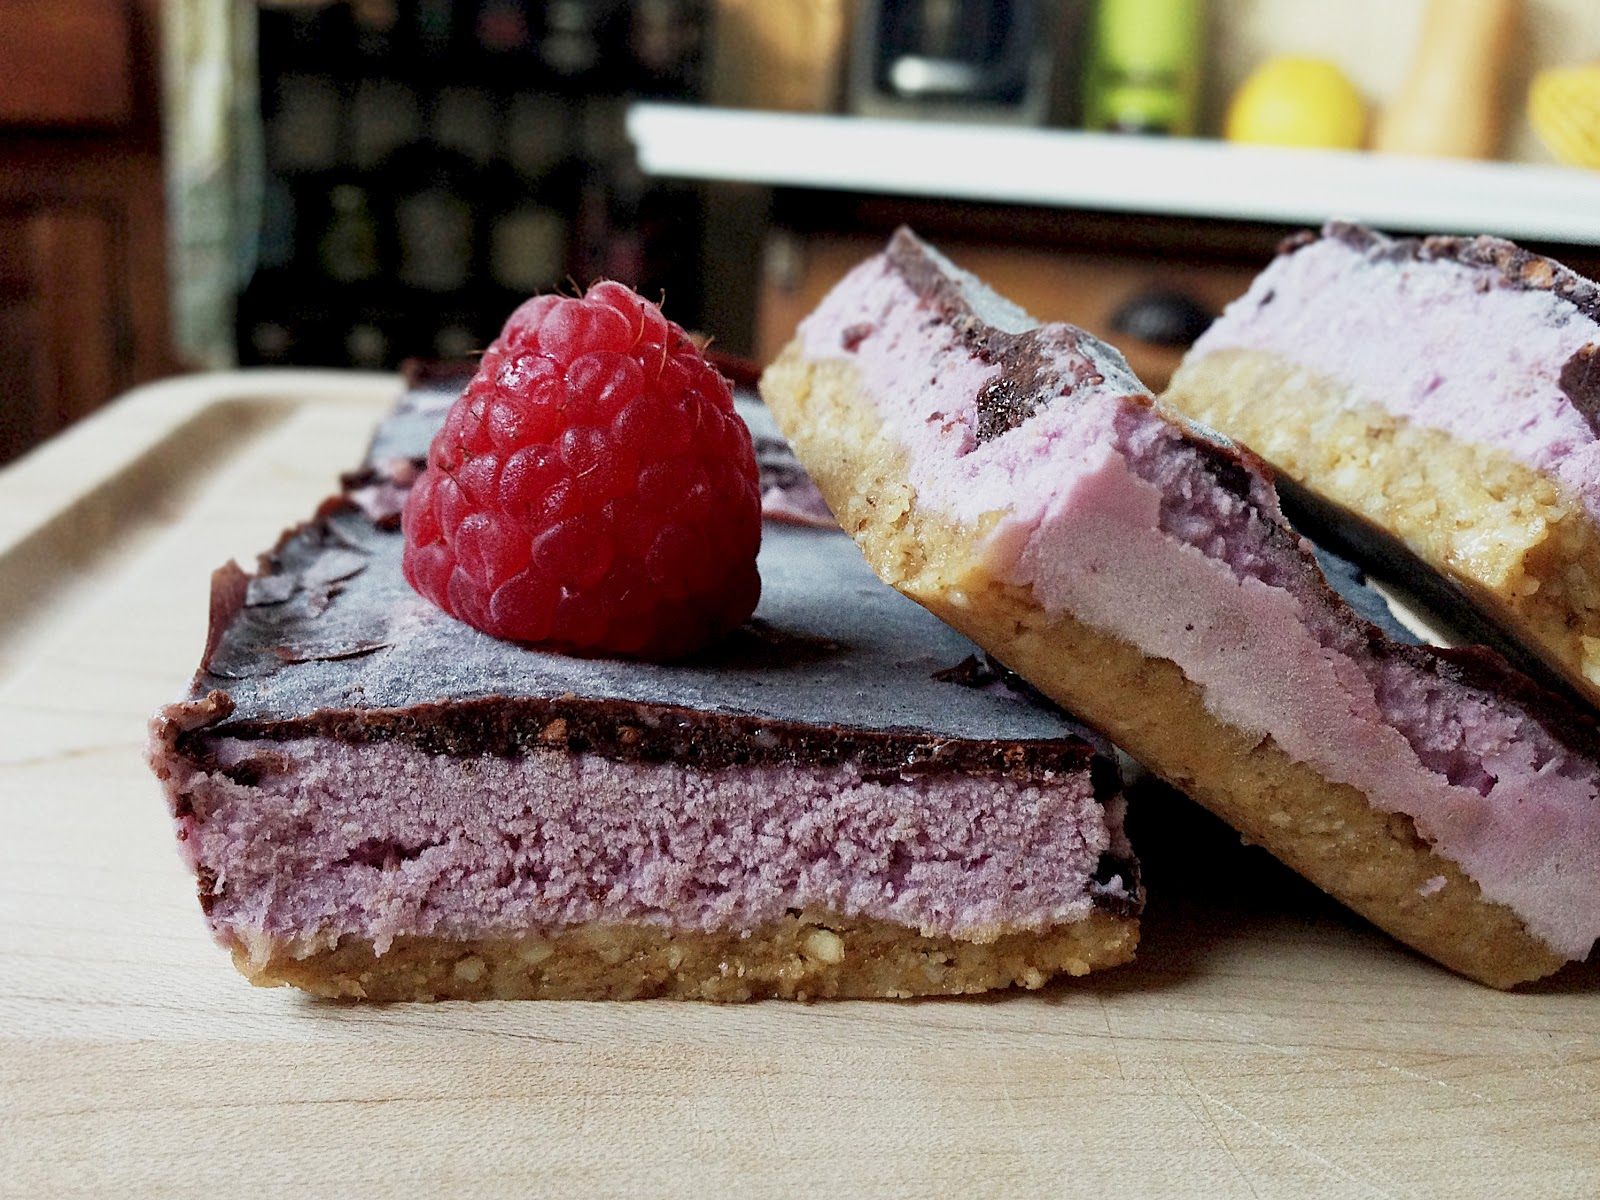 made to create raw peanut butter jelly ice cream bars. Black Bedroom Furniture Sets. Home Design Ideas